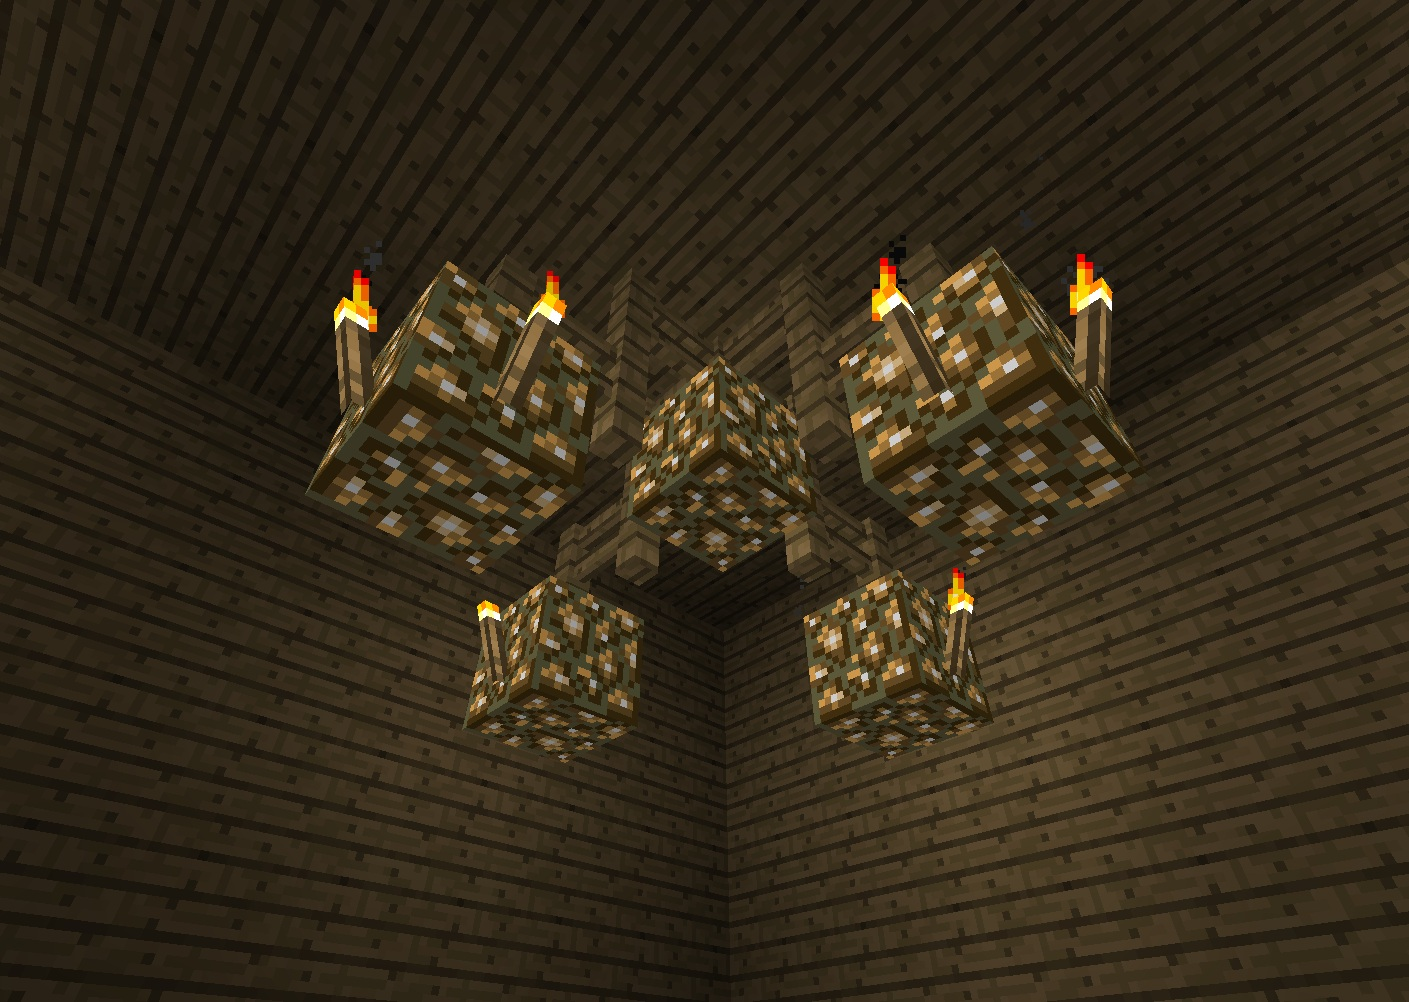 How To Craft Glowstone In Minecraft